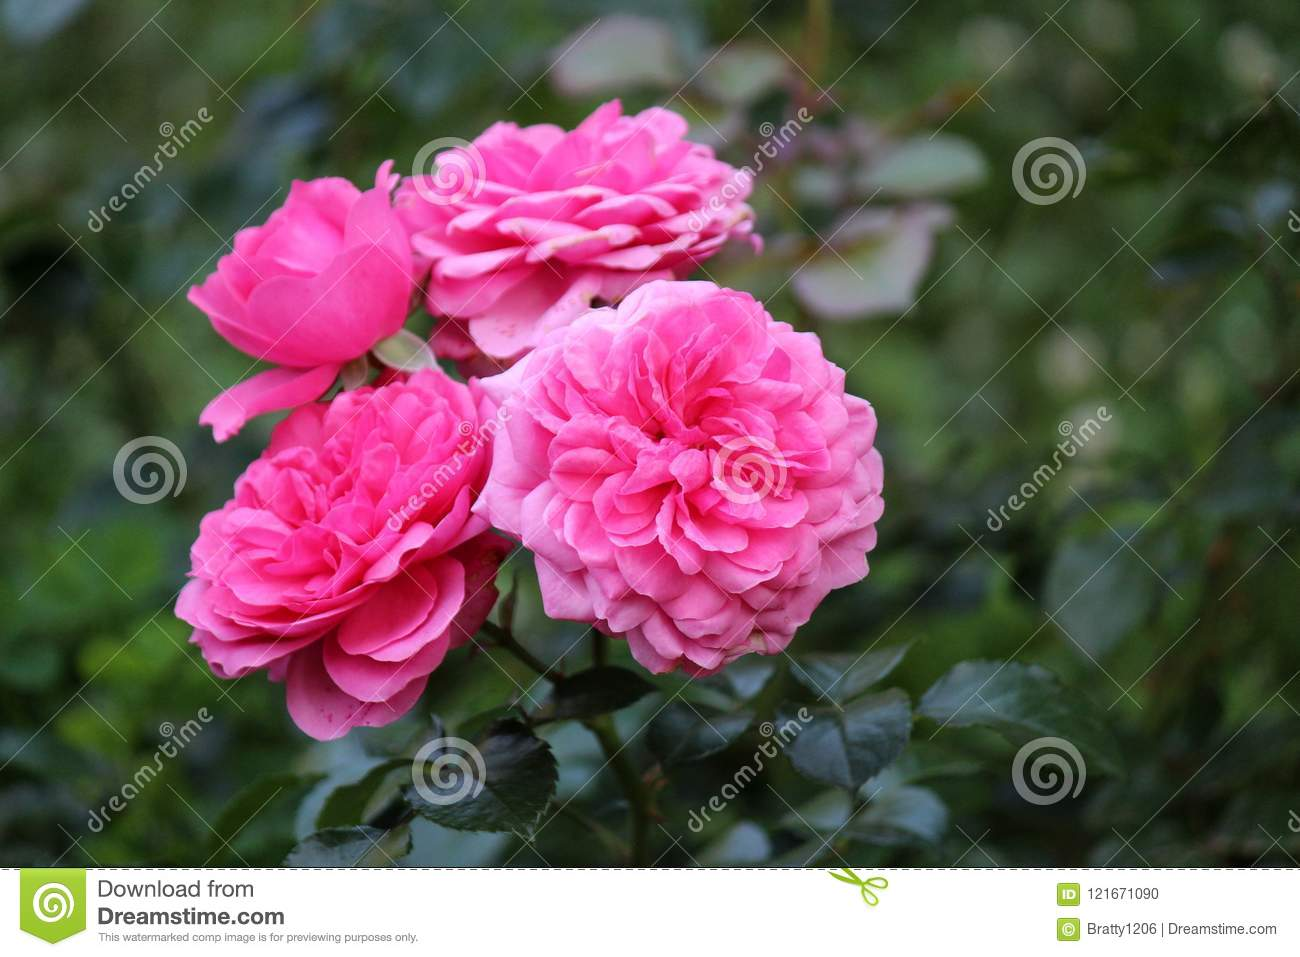 Dark Green Background Of Rose Bush Leaves With Bright Pink Petals Of